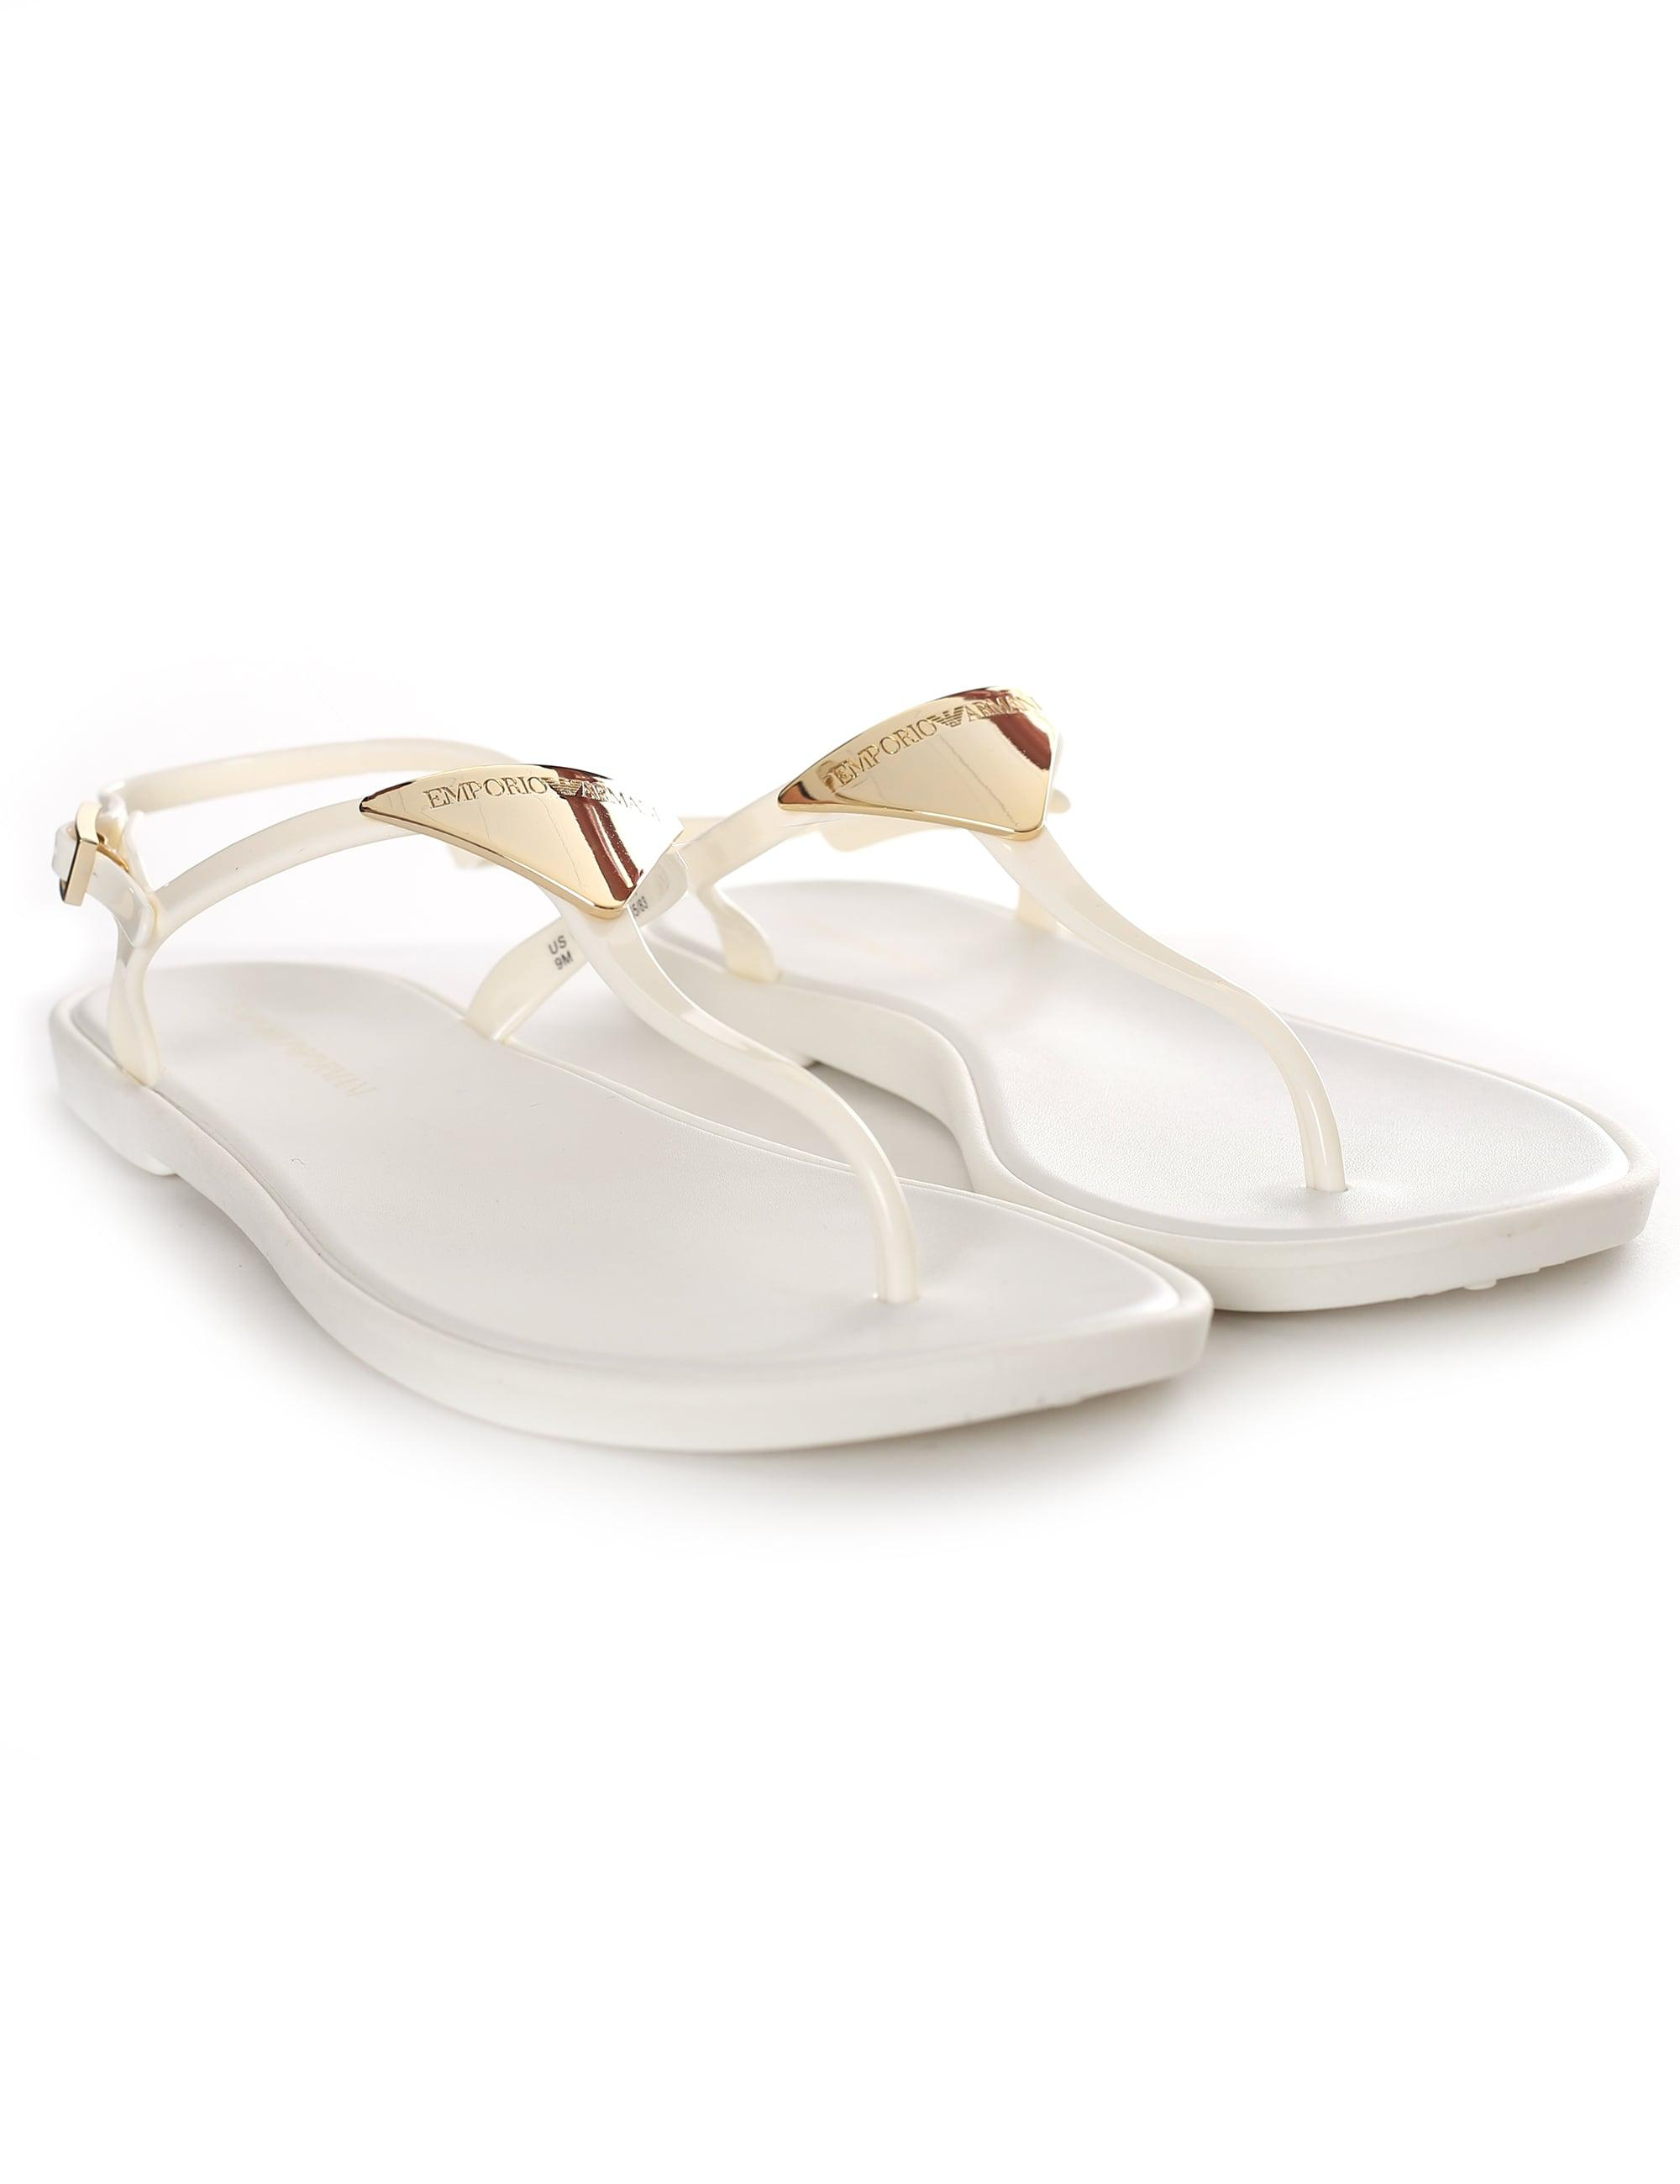 af09b5414cc3 Emporio Armani Gold Plaque Jelly Sandals in White - Lyst